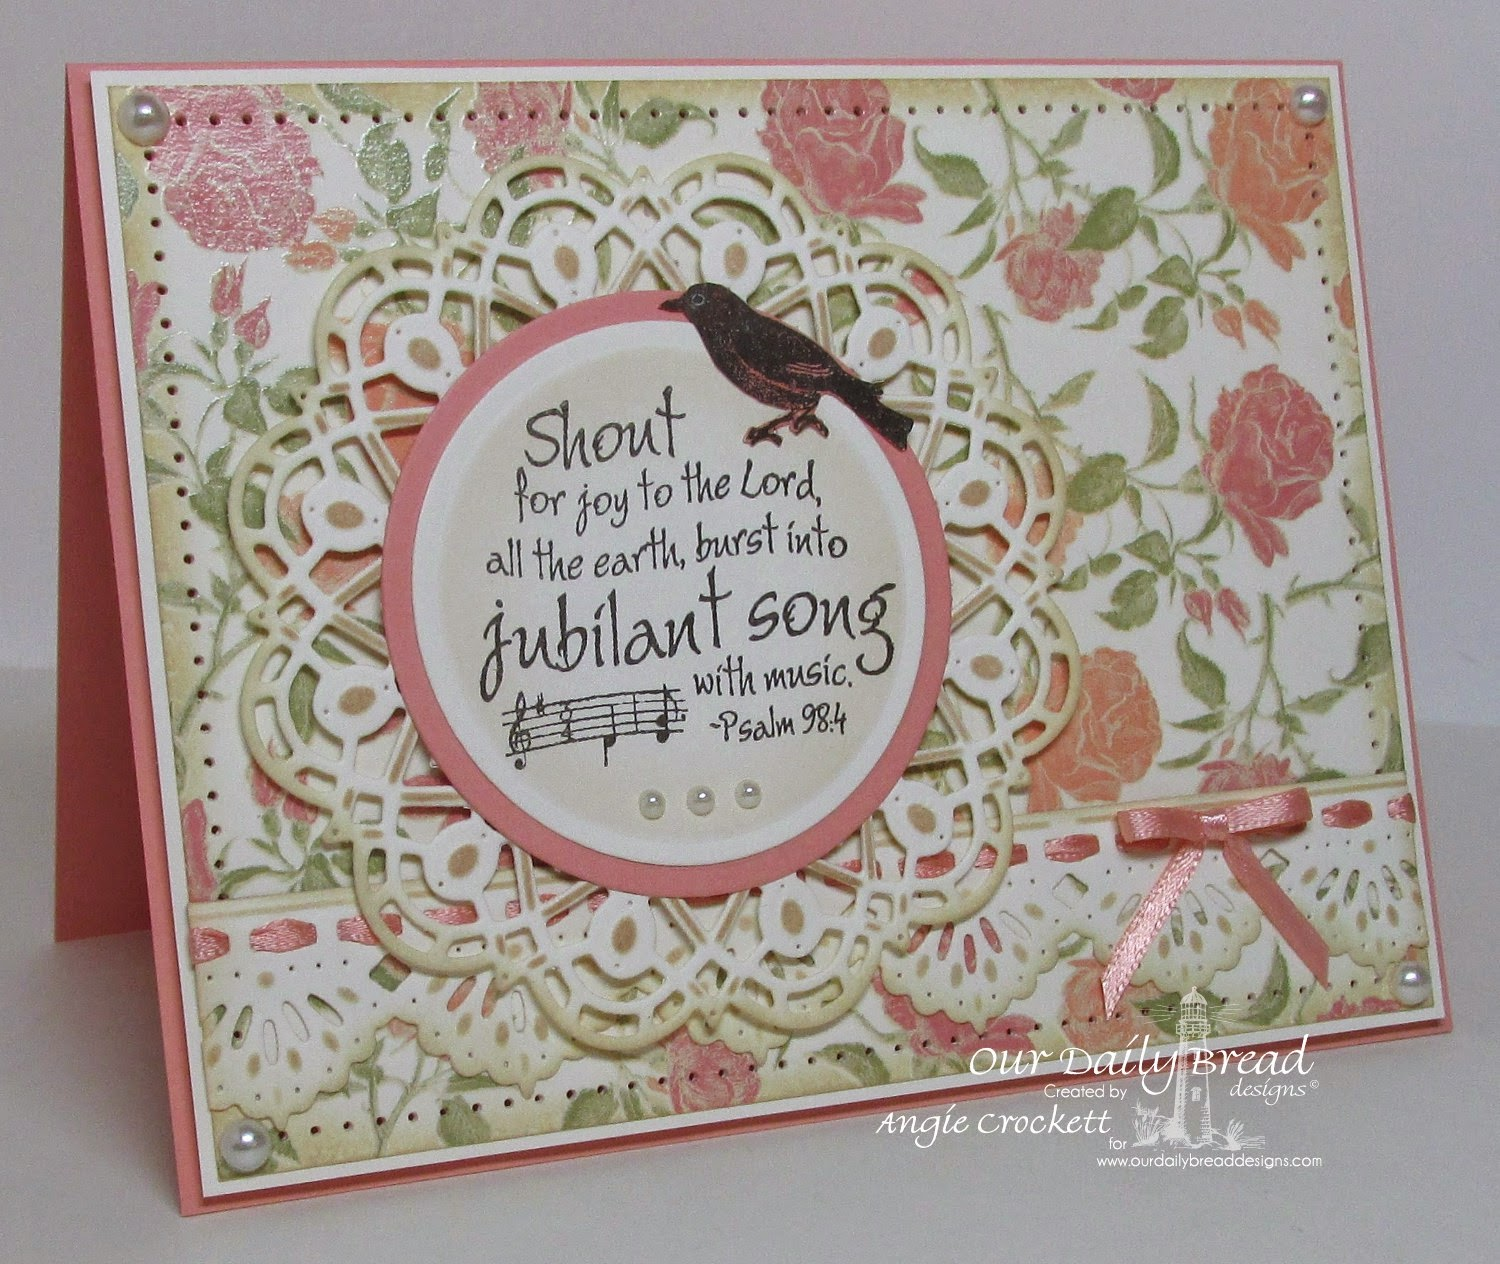 ODBD Music Speaks, ODBD Custom Doily Dies, ODBD Custom Beautiful Border Dies, Card Designer Angie Crockett